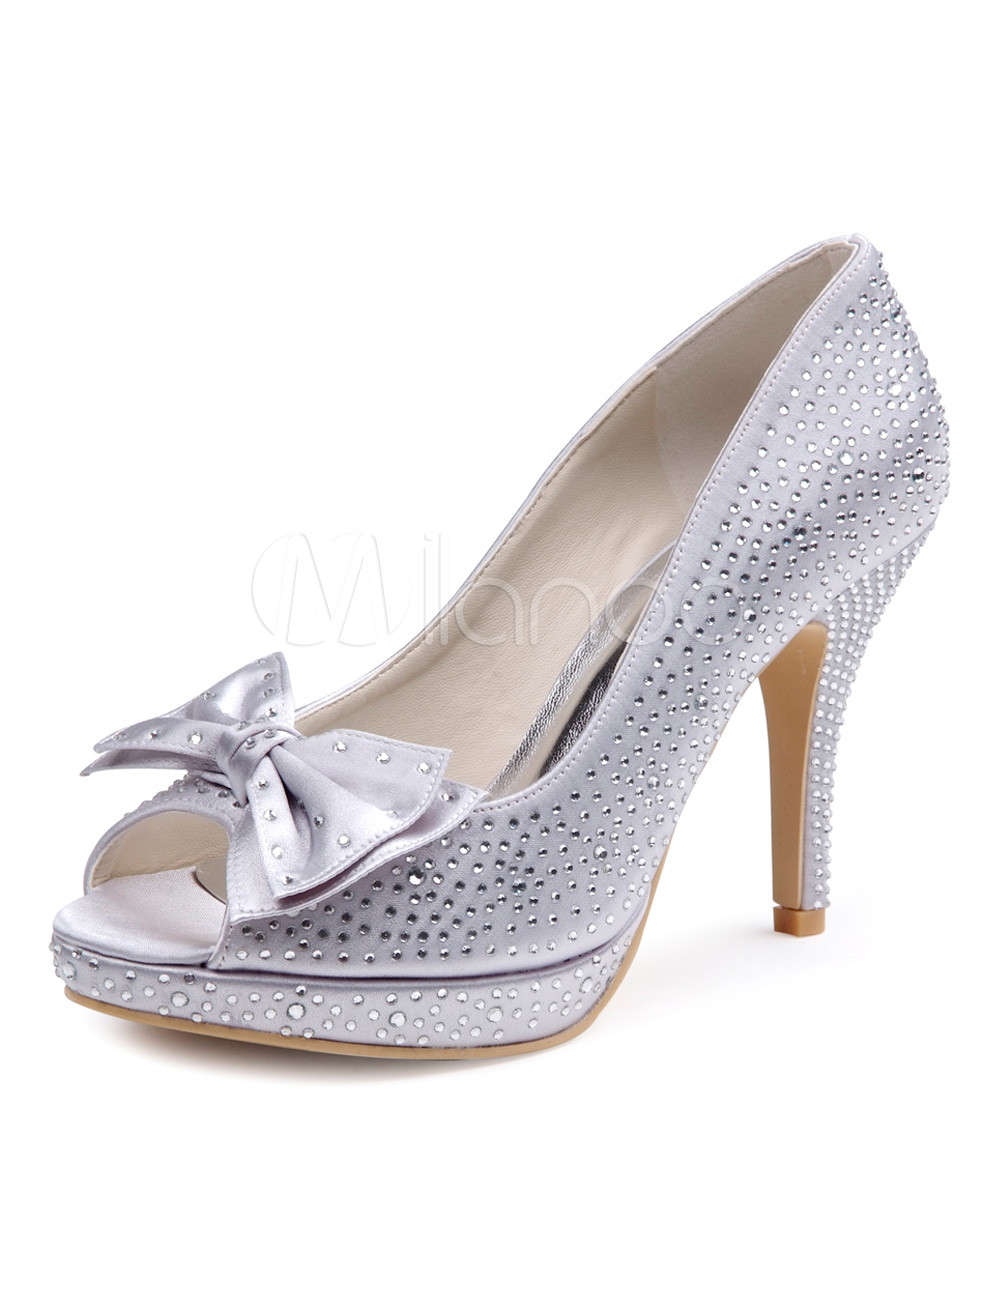 Buy Pretty Gray Silk And Satin Rhinestone Peep Toe Women's Evening Shoes for $73.94 in Milanoo store